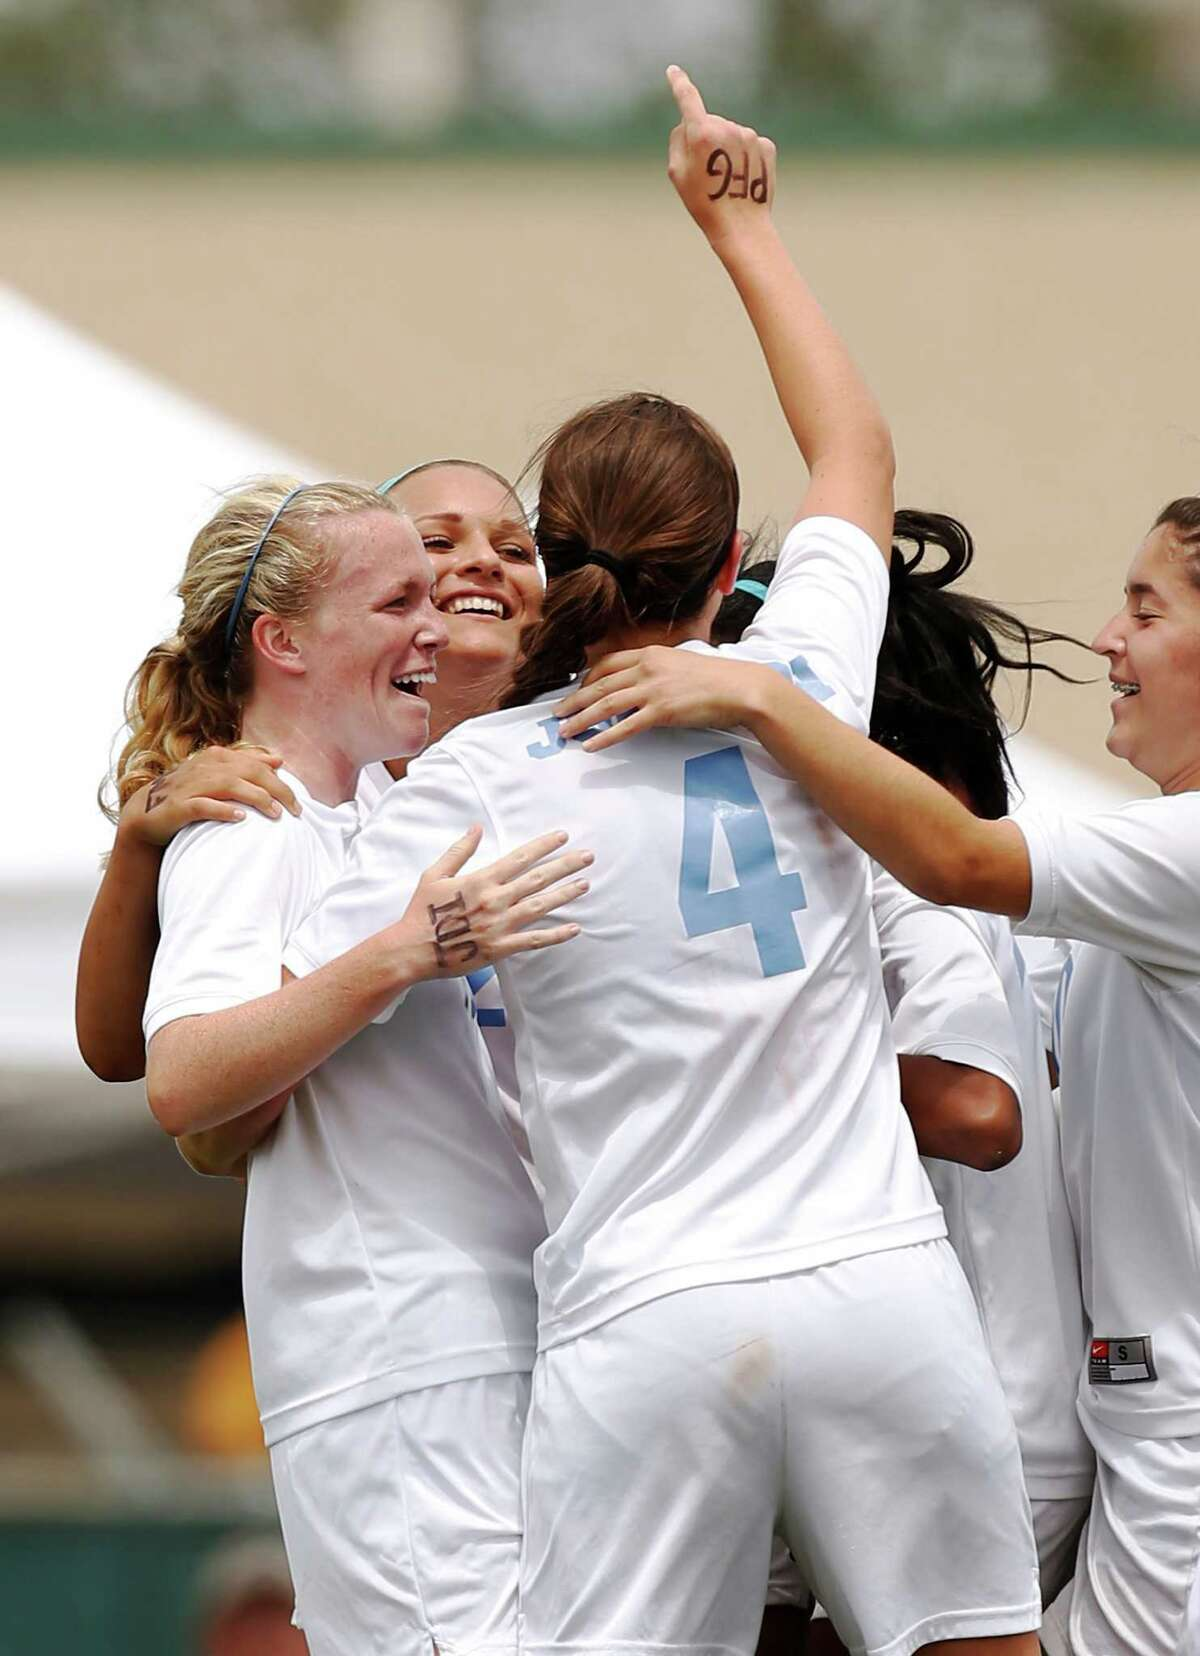 Johnson players celebrate after Madelyn Carter scored during game action of the Region IV-5A girls final against Churchill at the North East Soccer Stadium on Saturday, April 13, 2013. MICHAEL MILLER / FOR THE EXPRESS-NEWS